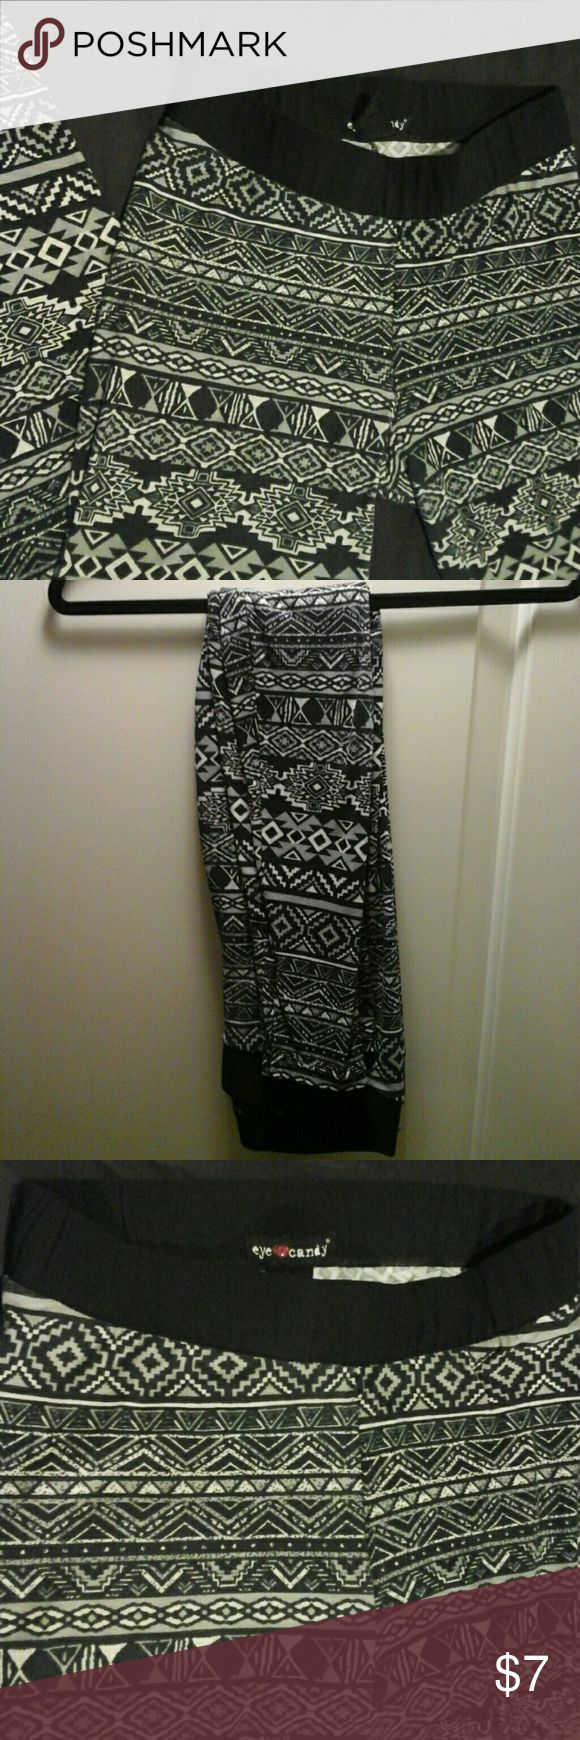 Aztec print leggings Size Medium in Junior's, off white, gray and black printed leggings , Super soft ,comfortable and stretchy light fabric eye candy Pants Leggings